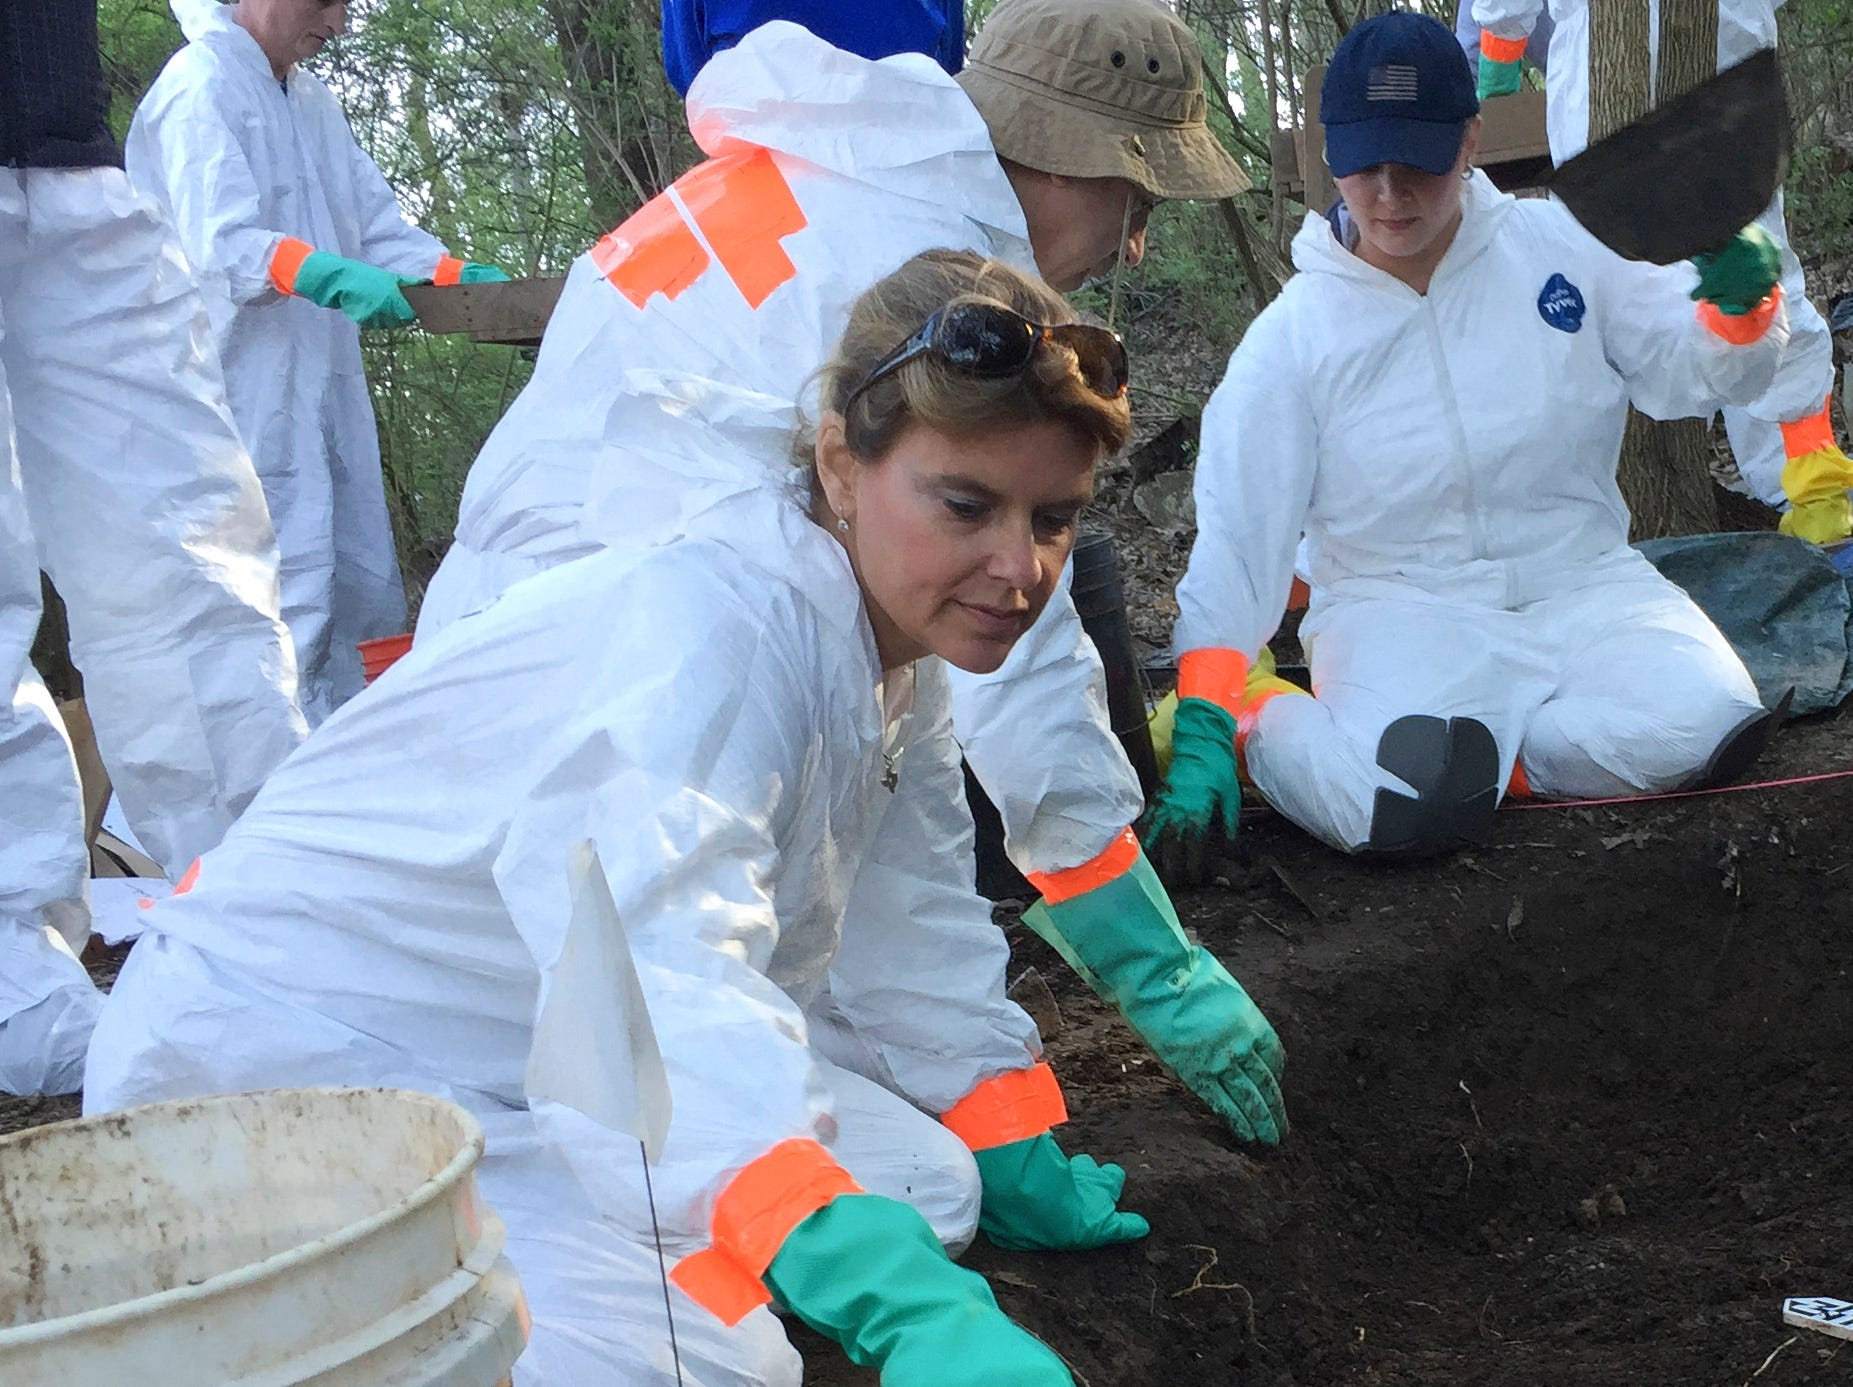 Leslie Kopper, special agent with the FBI in Denver, left, works with other members of the FBI Evidence Response Team to recover human remains during a training at the University of Tennessee Forensic Anthropology Center, often called the body farm, on Thursday, March 17, 2016. FBI agents from across the country are attending the weeklong training.